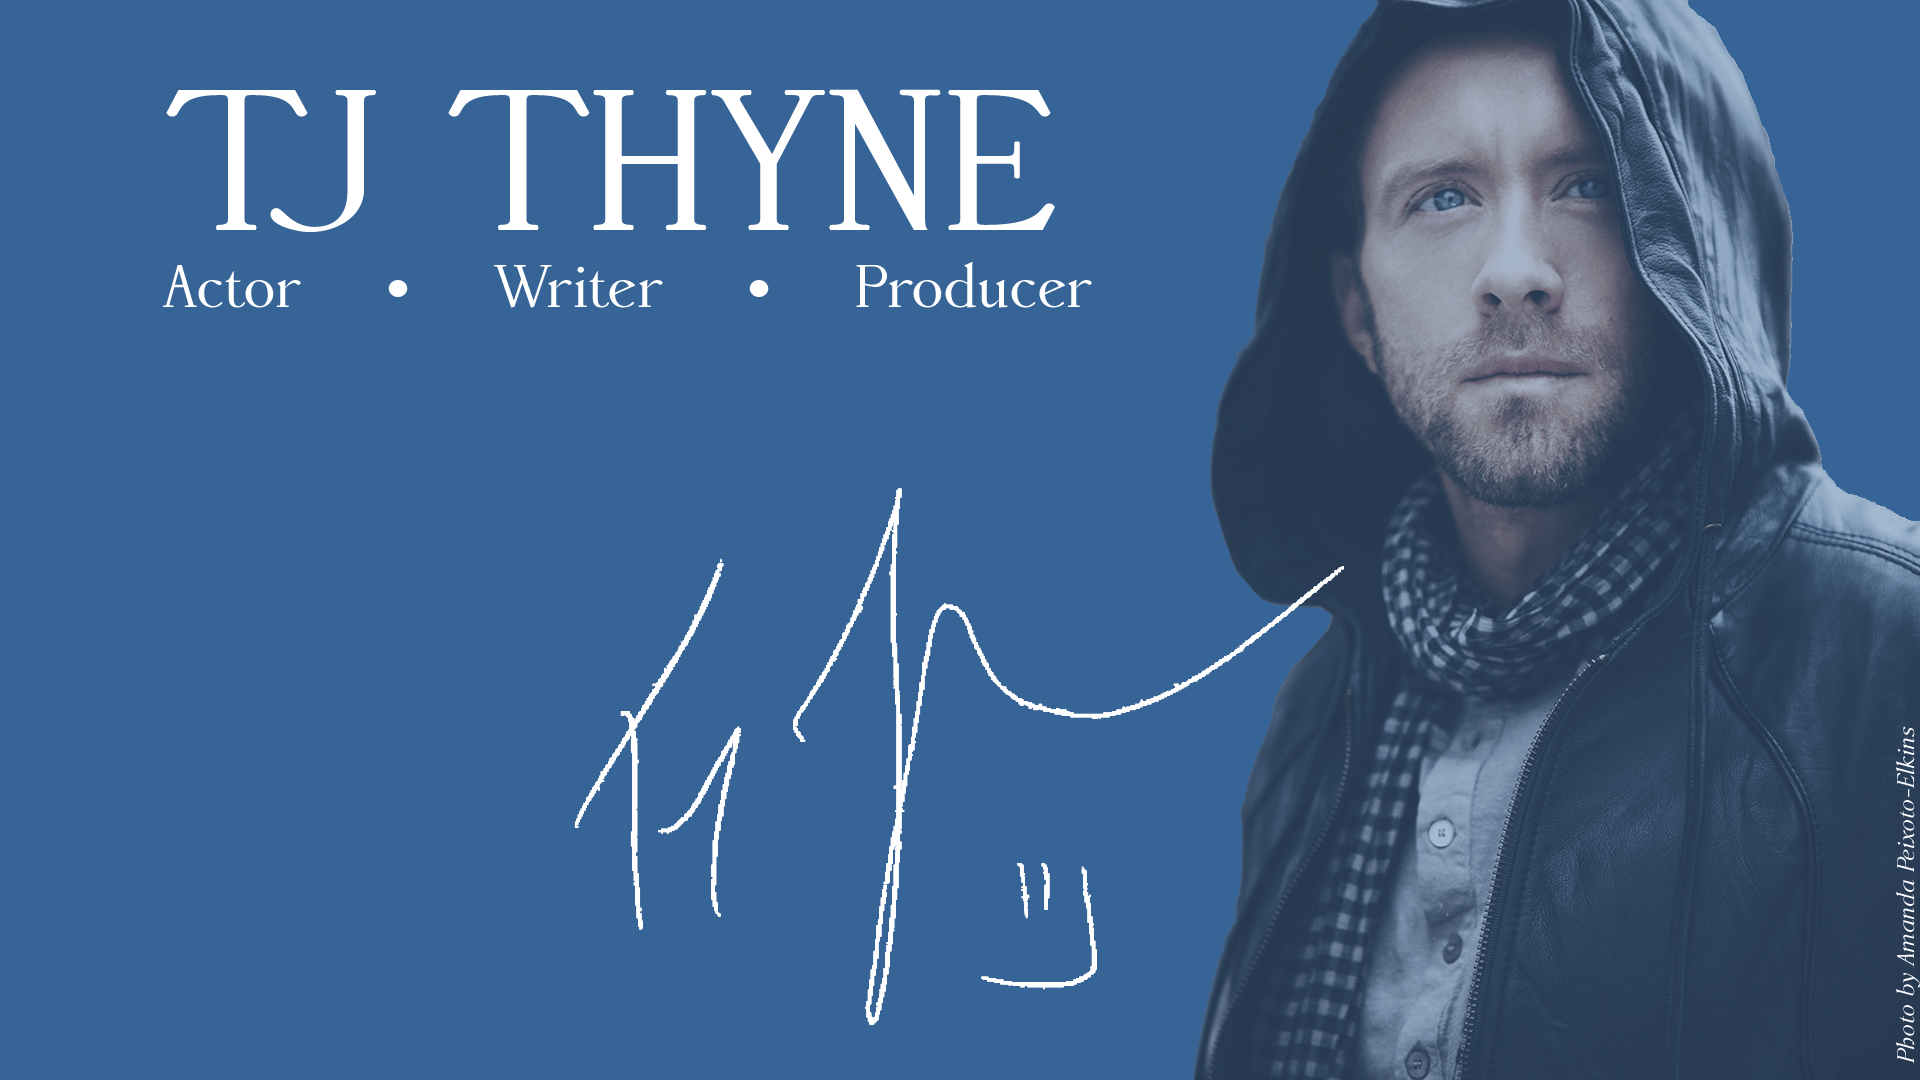 image of TJ Thyne - Actor, Writer, Producer